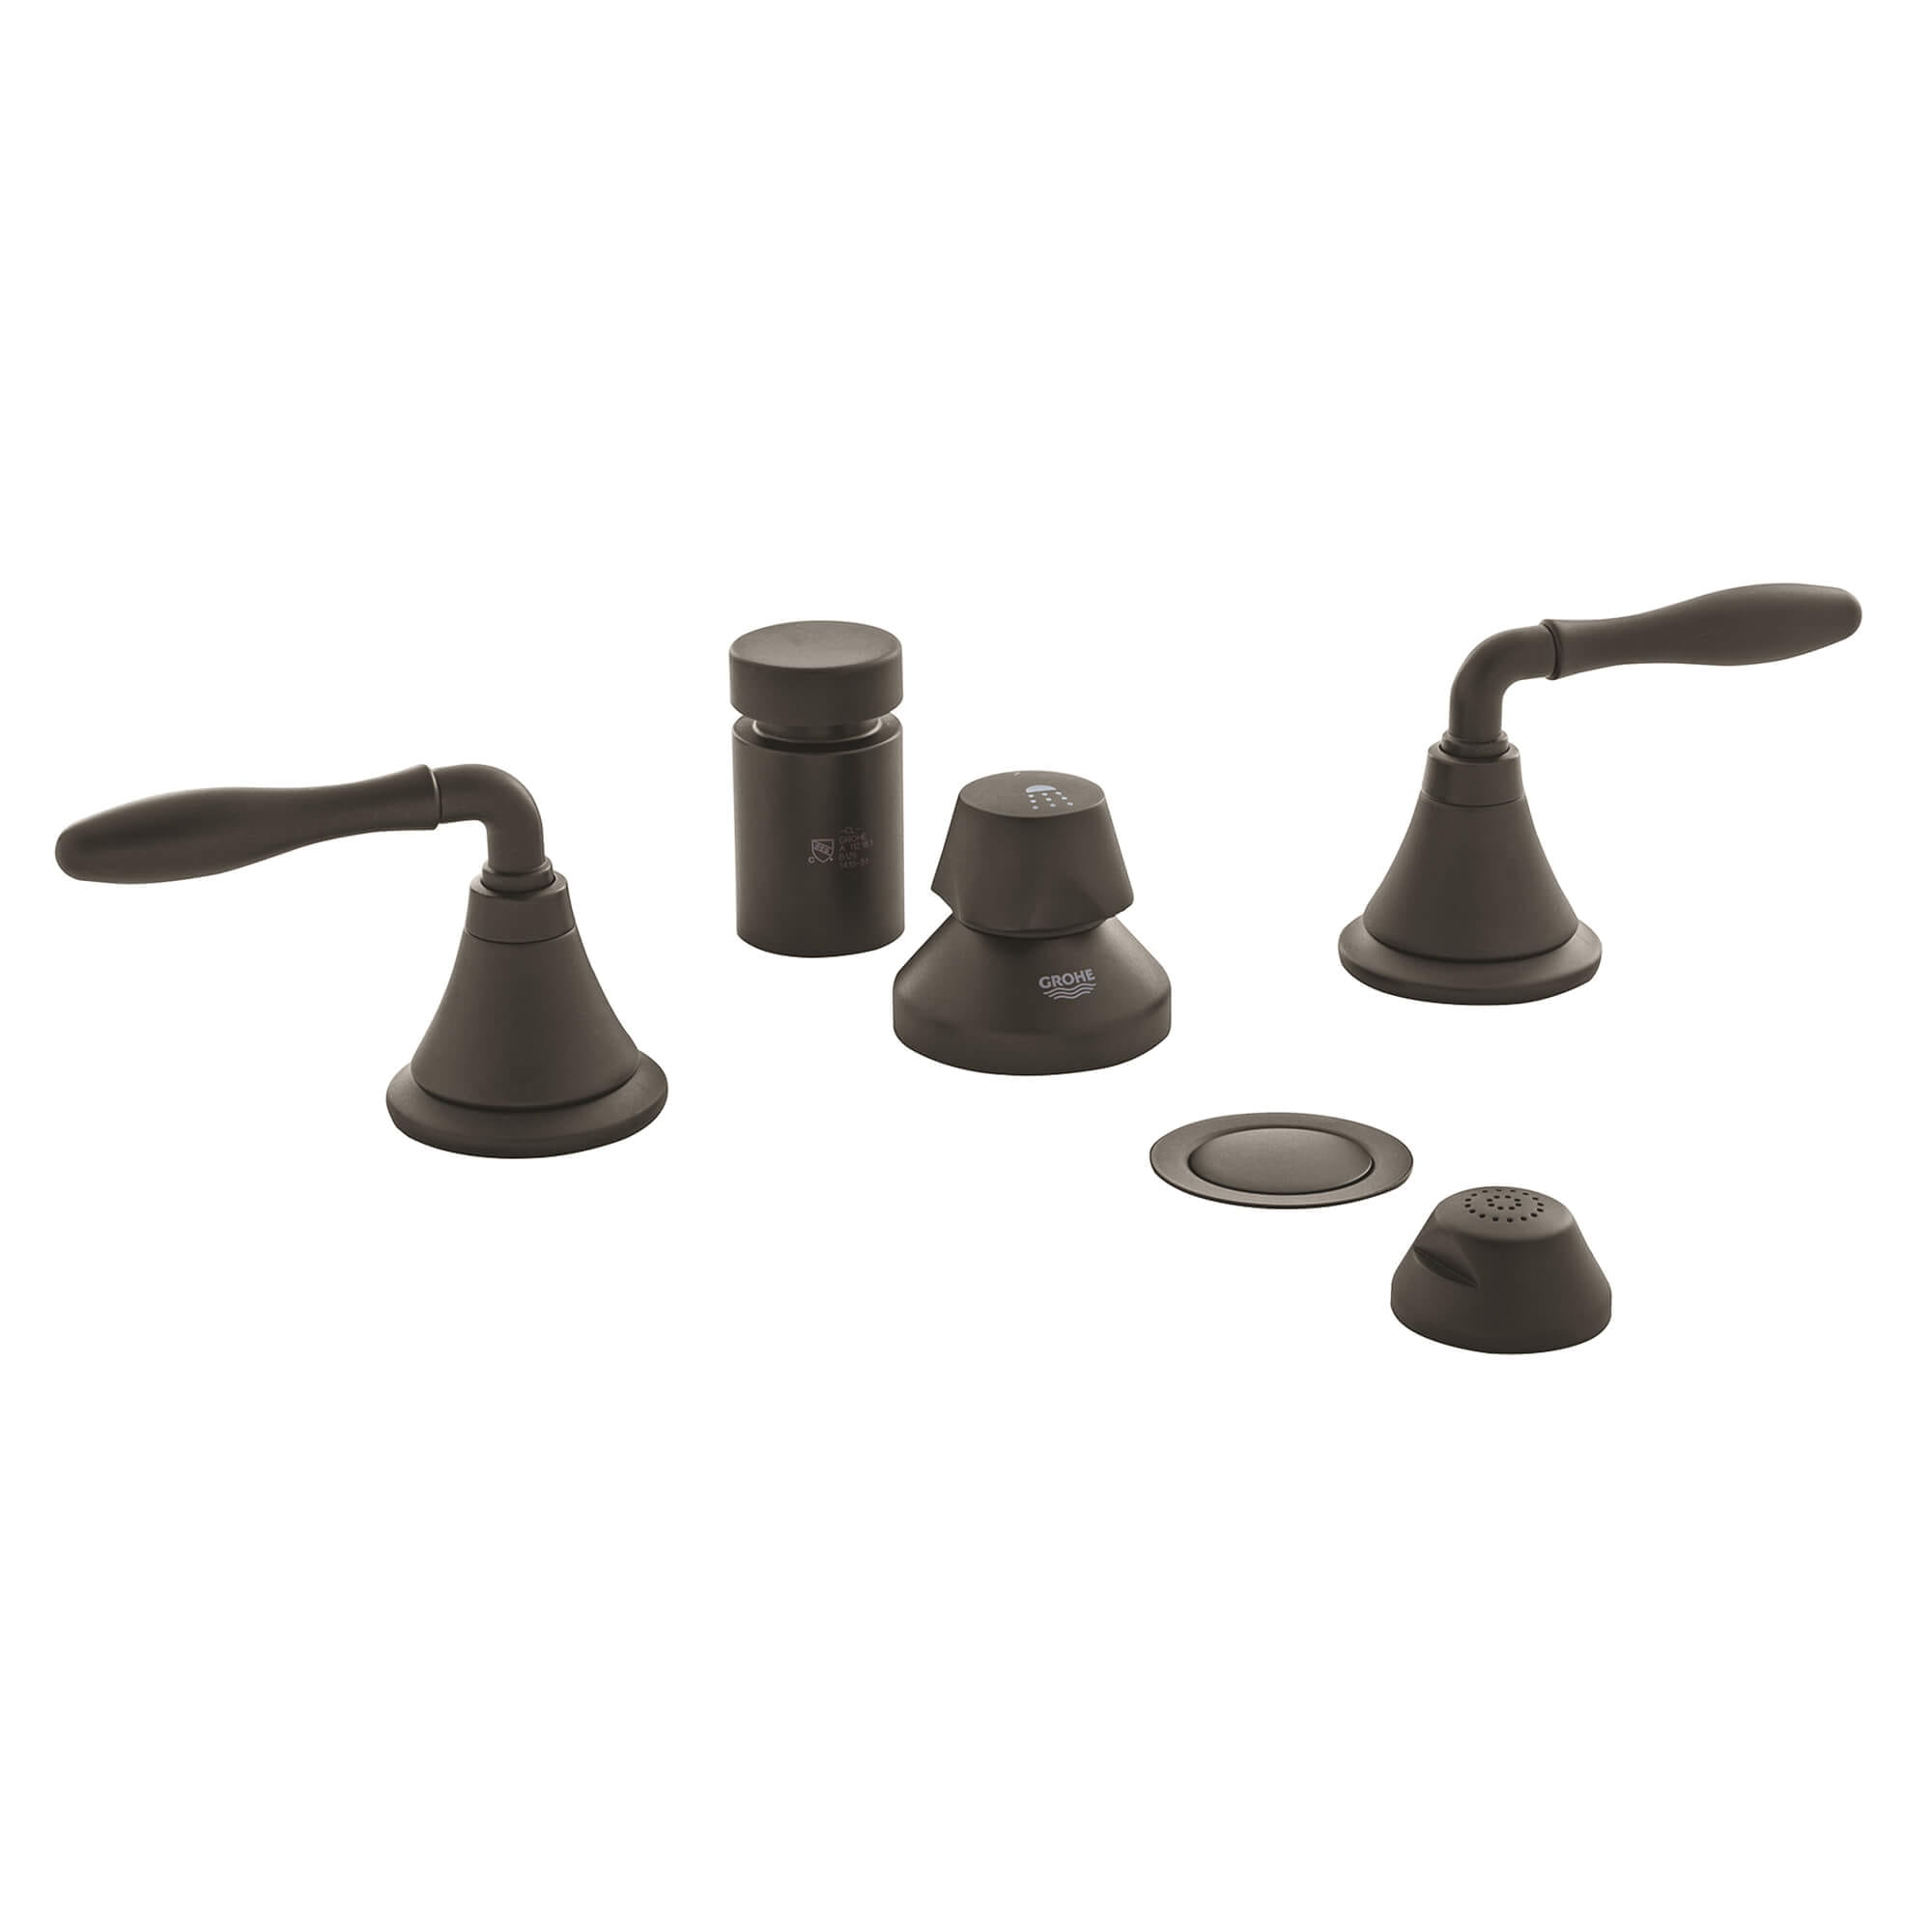 Lever Handles Pair GROHE OIL RUBBED BRONZE